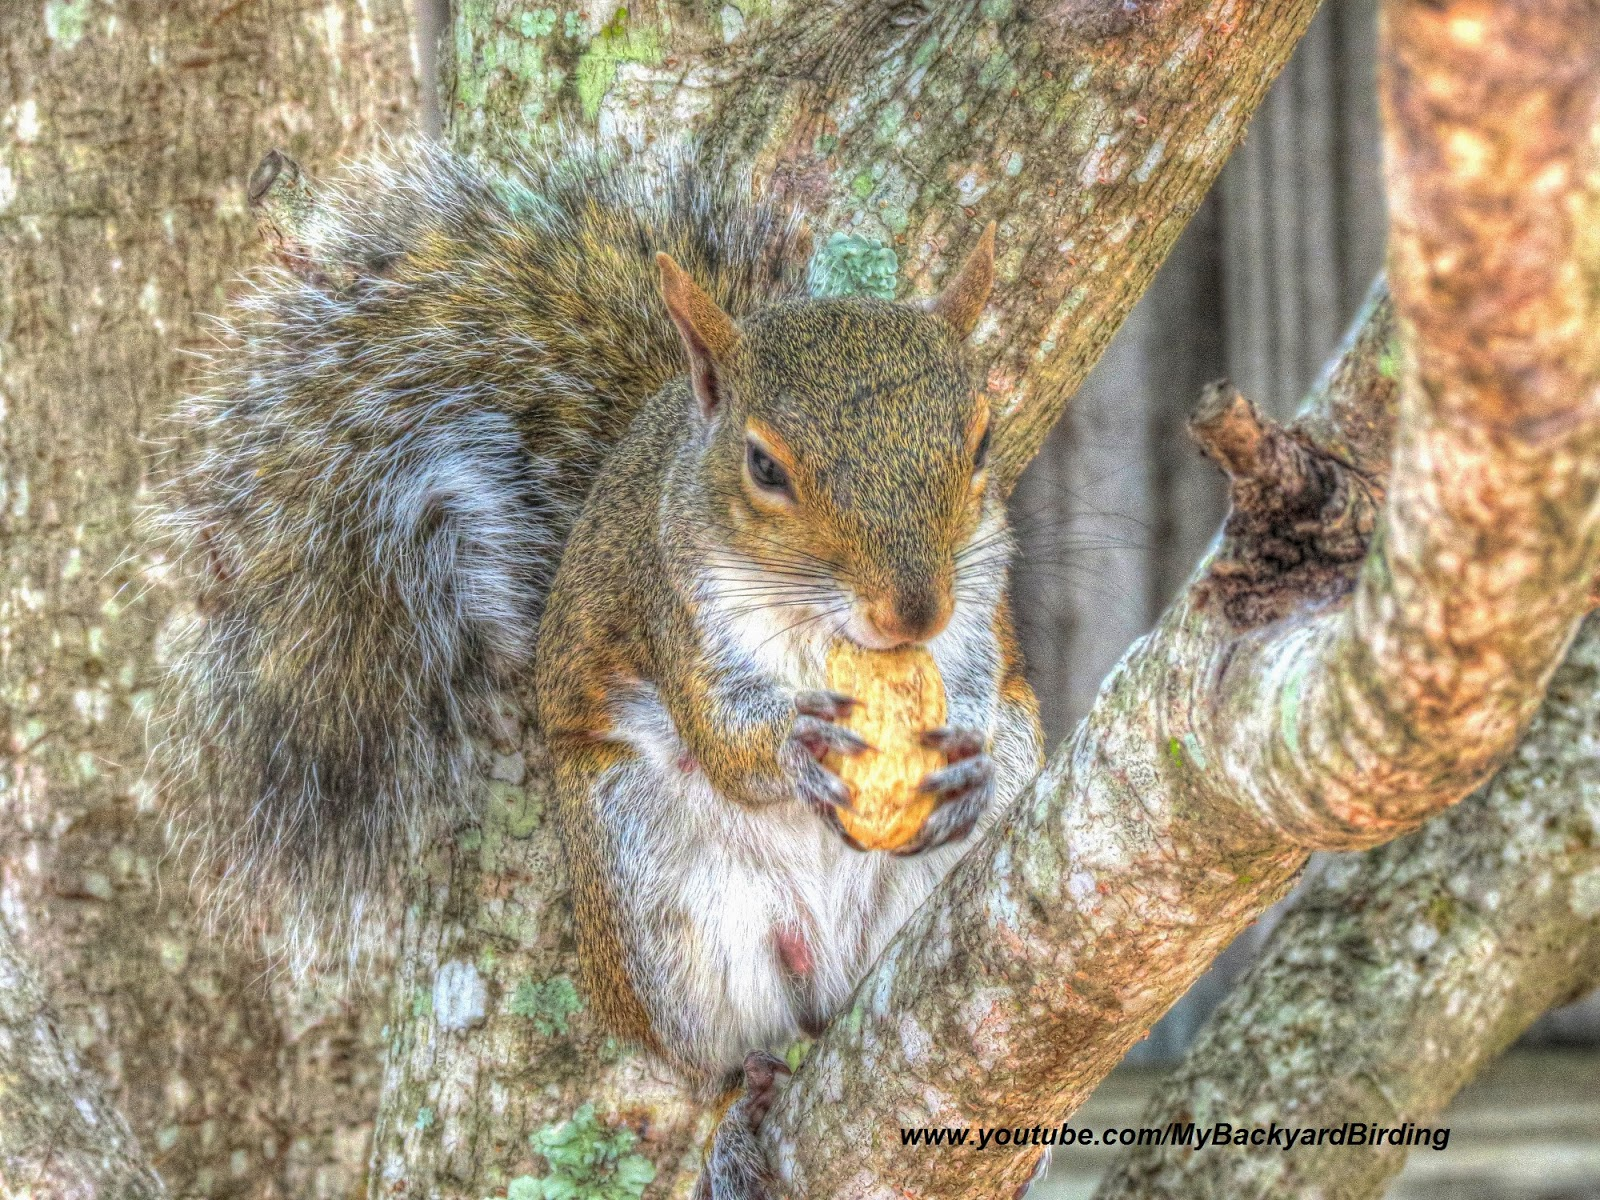 Gray Squirrel Eating Peanut